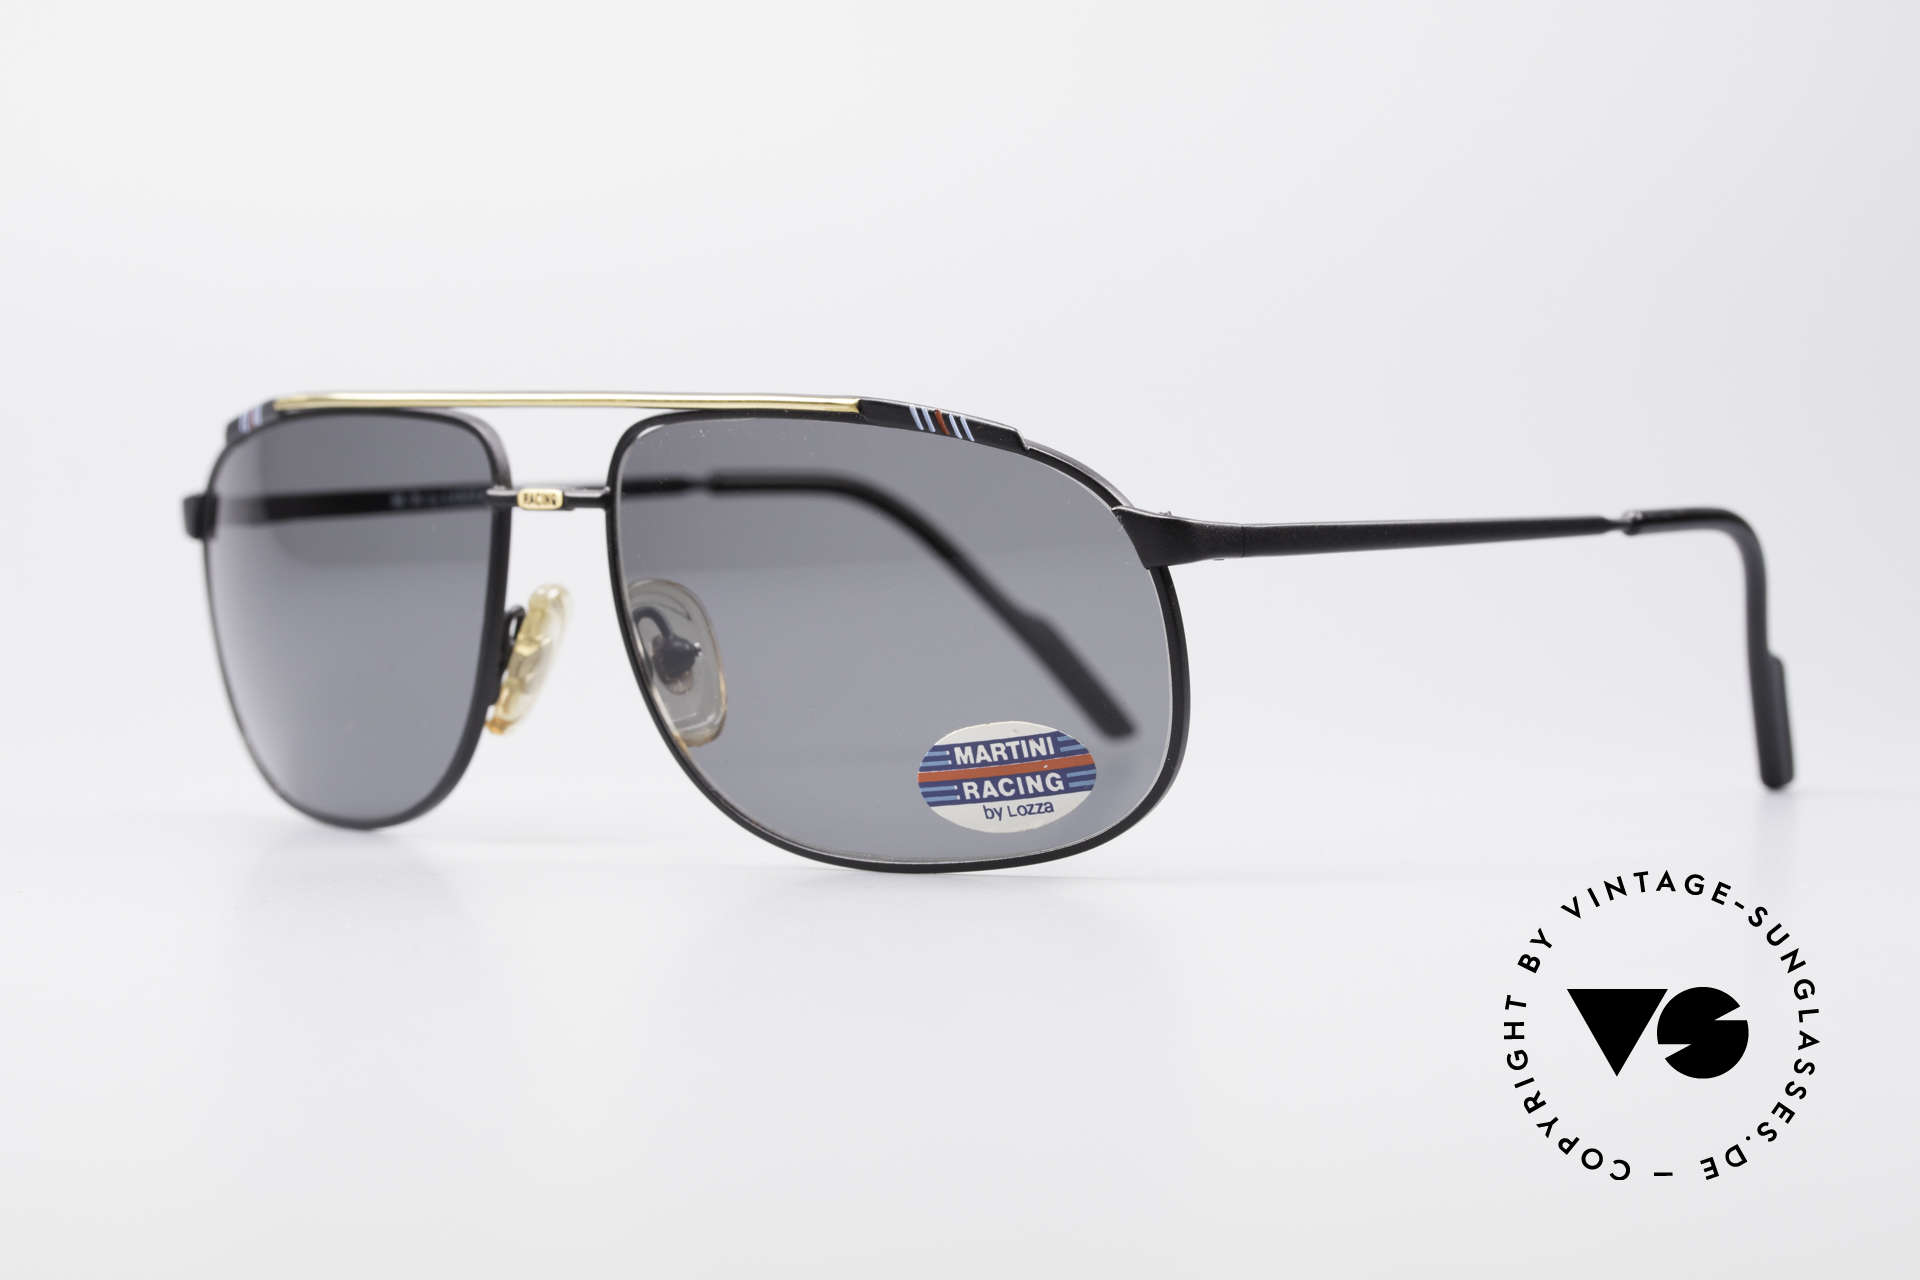 Martini Racing - Tenere Motorsport Sunglasses, various accessories were made for the RACE DRIVERS, Made for Men